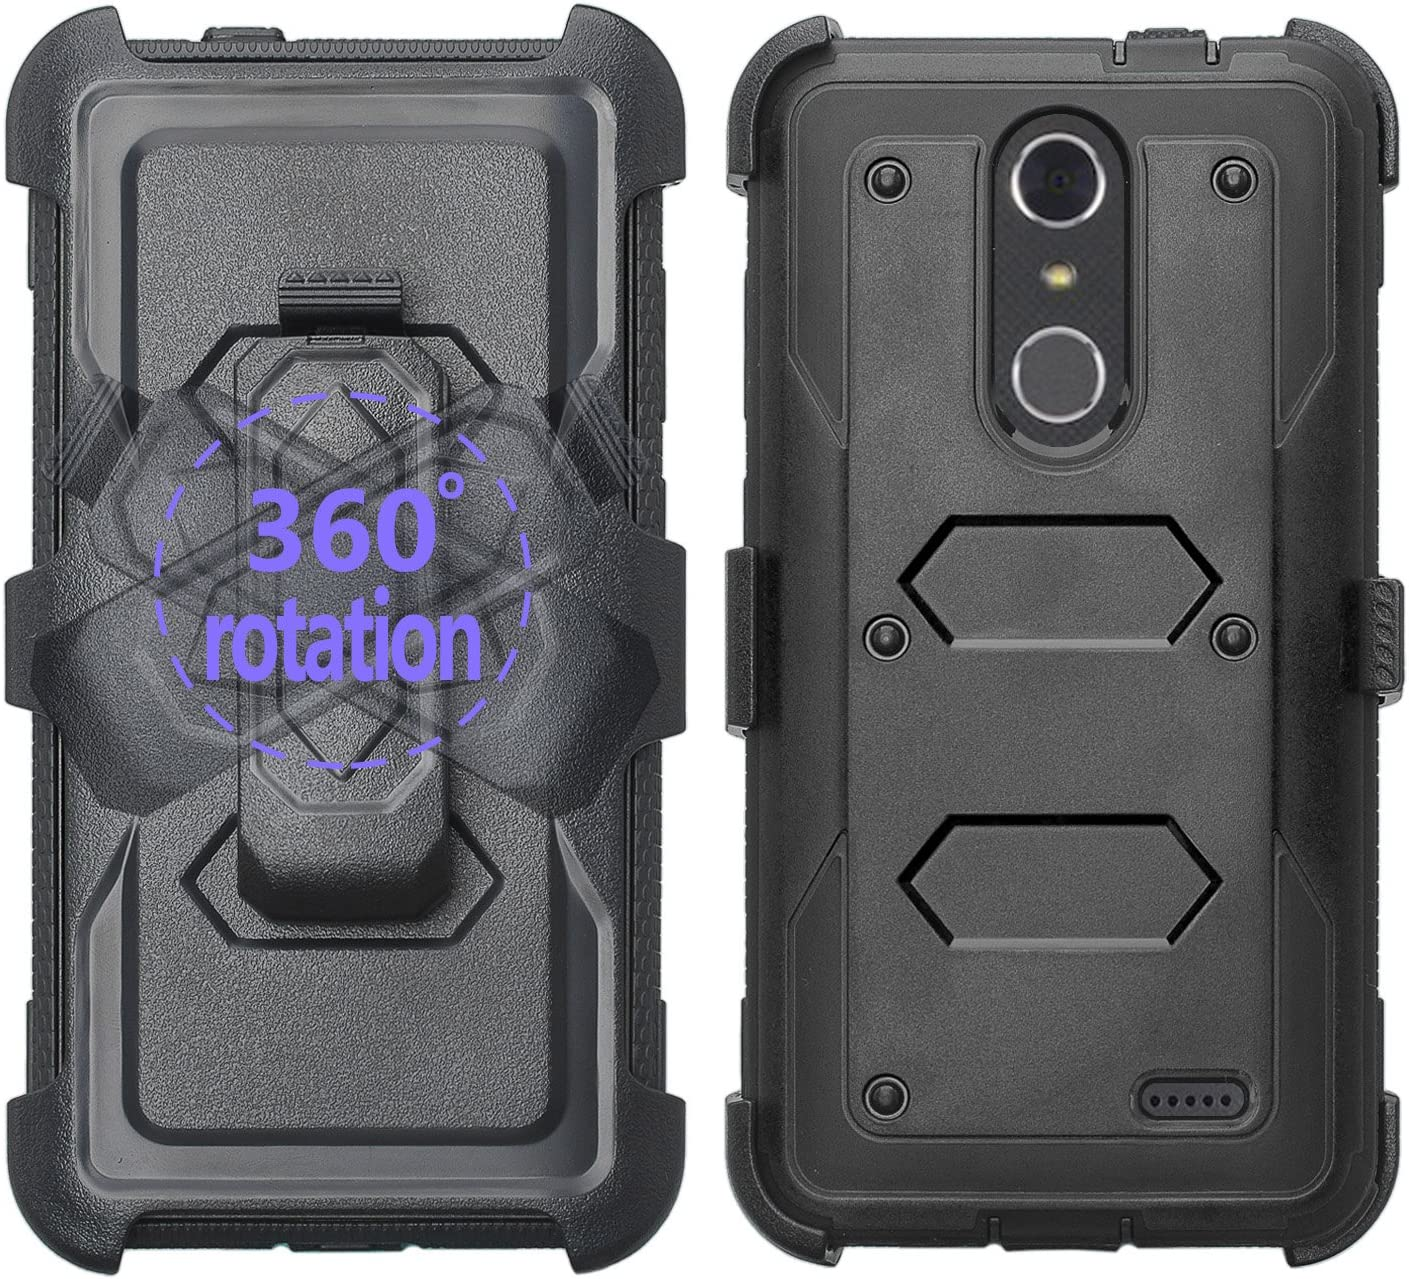 [GALAXY WIRELESS] For ZTE ZMAX One (Z719DL) Case, ZTE Grand X 4 Case, ZTE Blade Spark Z971 Case [Shock Proof] Heavy Duty Belt Clip Holster,Full Body Coverage with Built In Screen Protector - Black